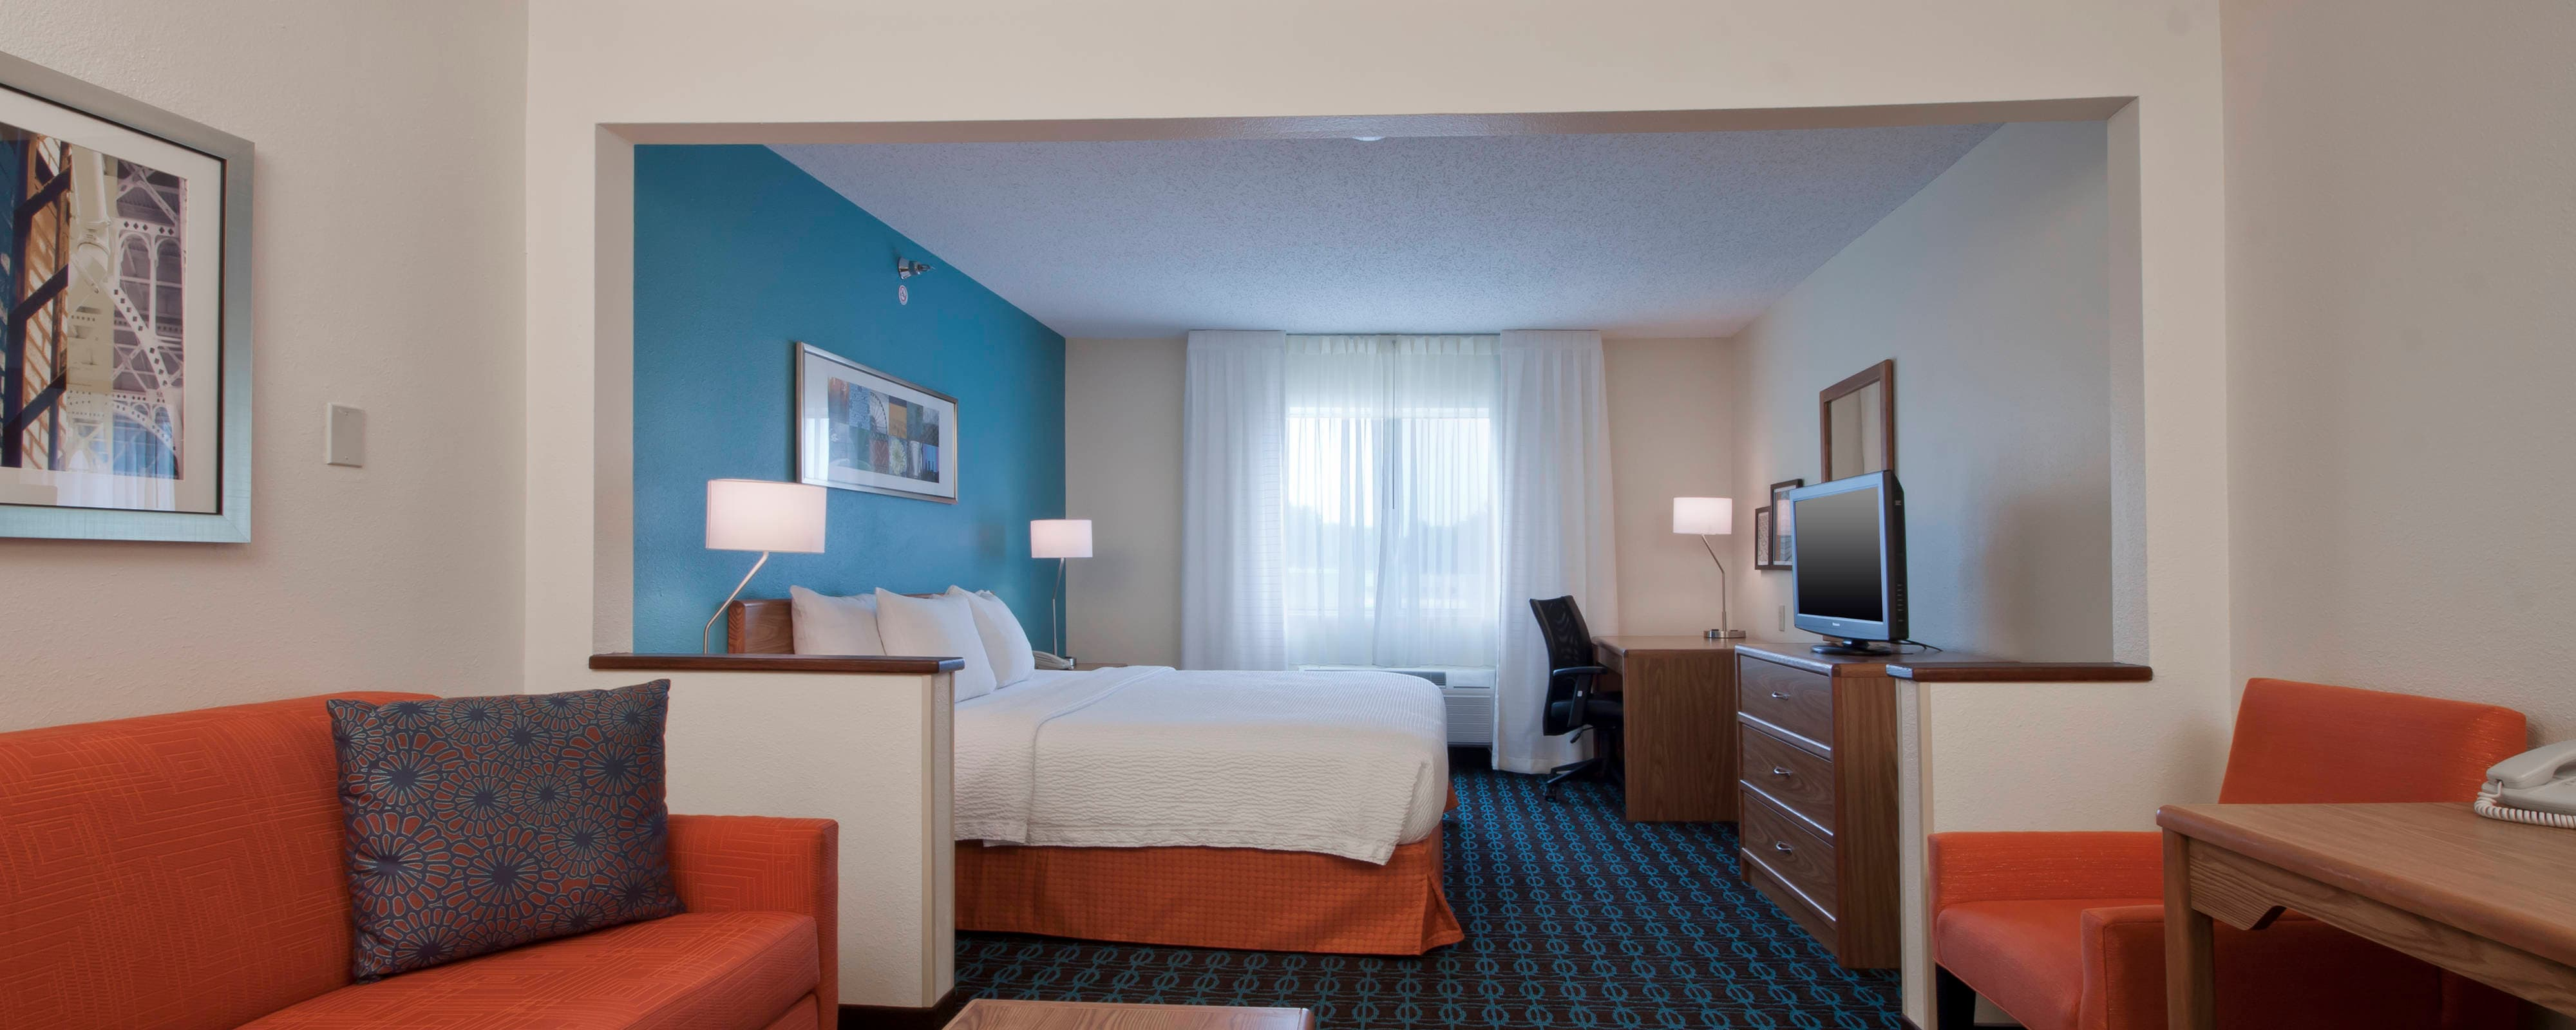 Executive-Kingsize-Zimmer in Hotel in Moline, Illinois